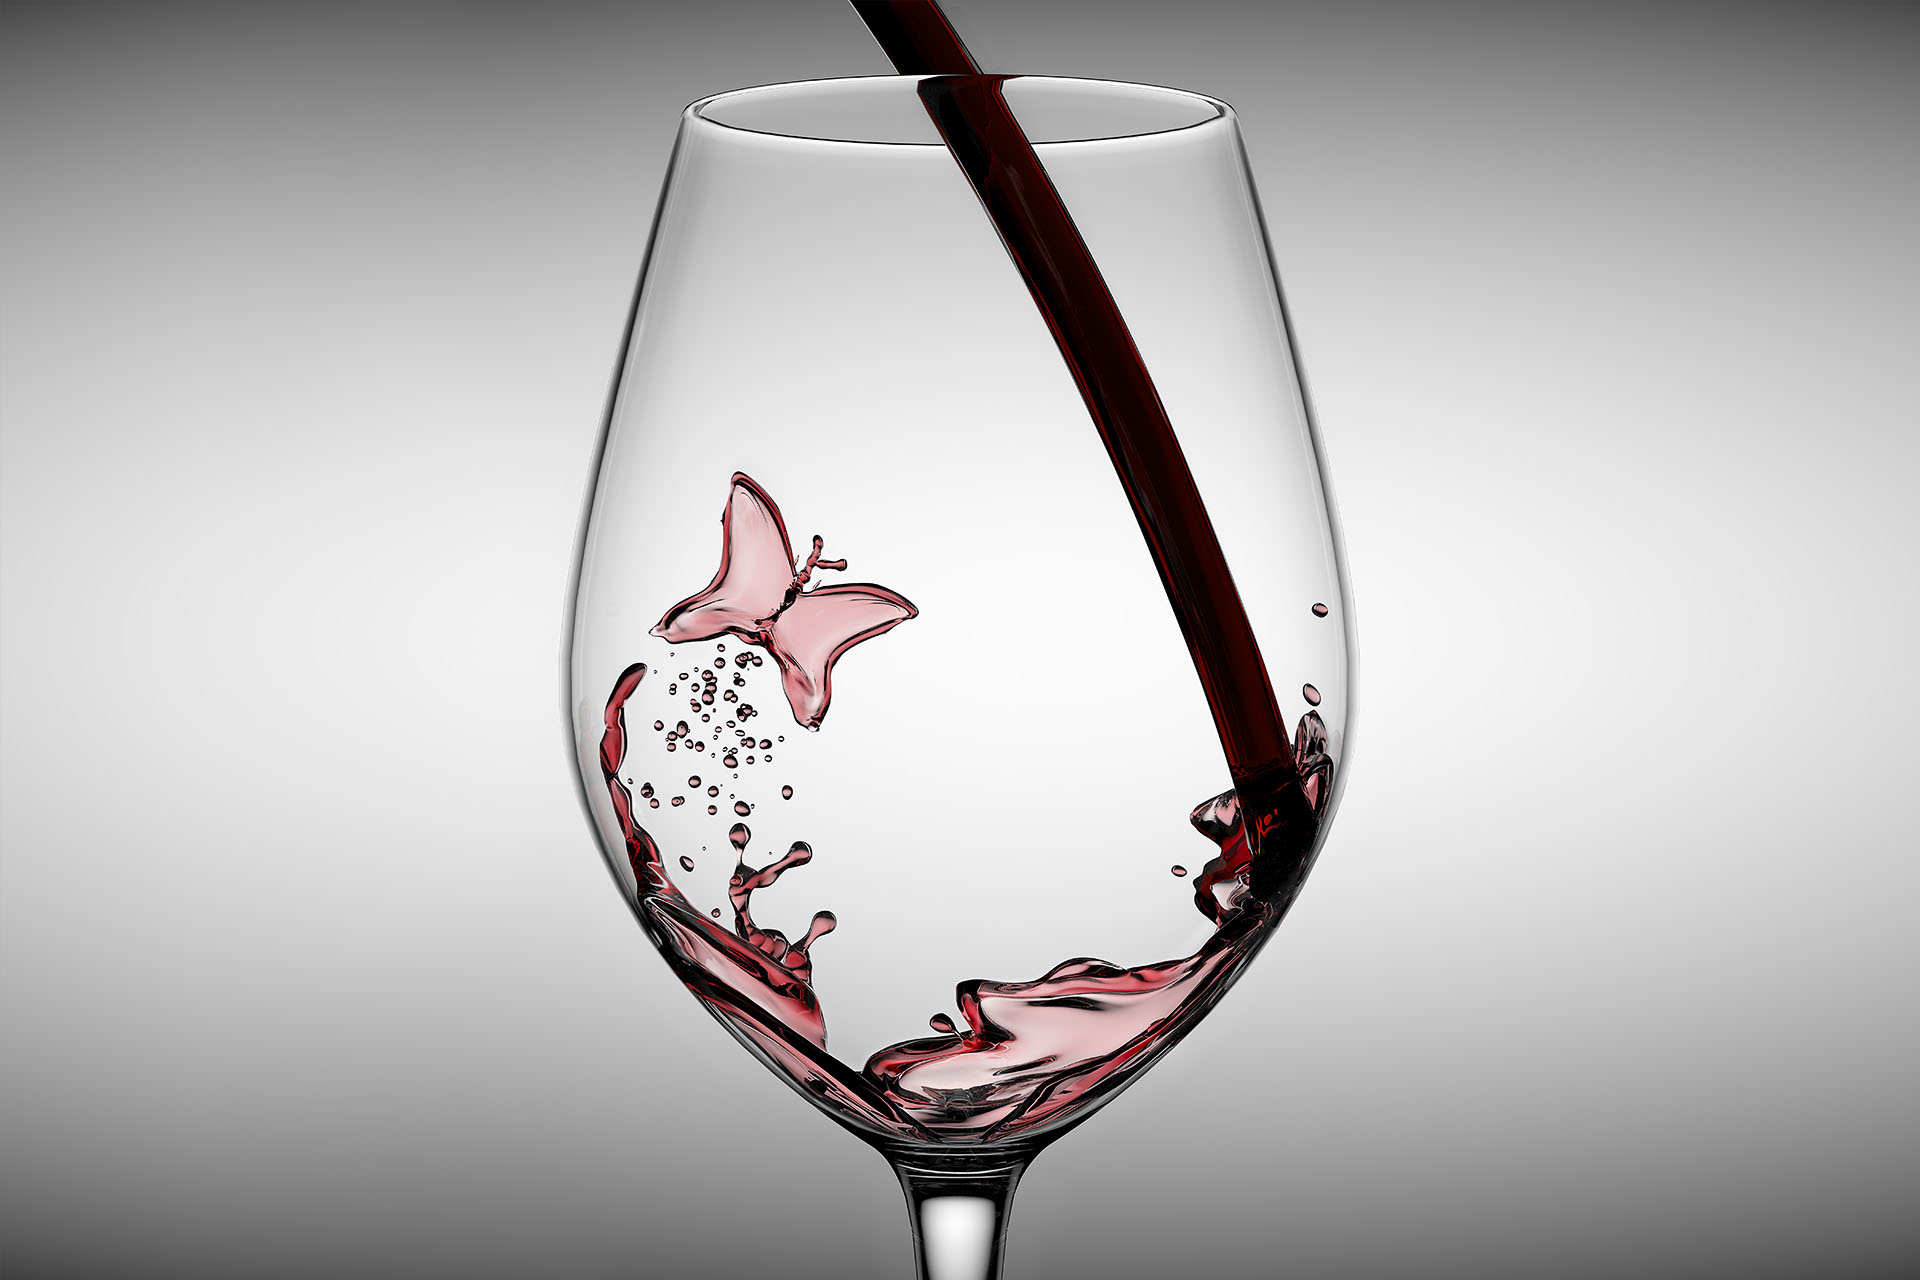 Pouring wine into glass | Dovis Bird Agency Reps